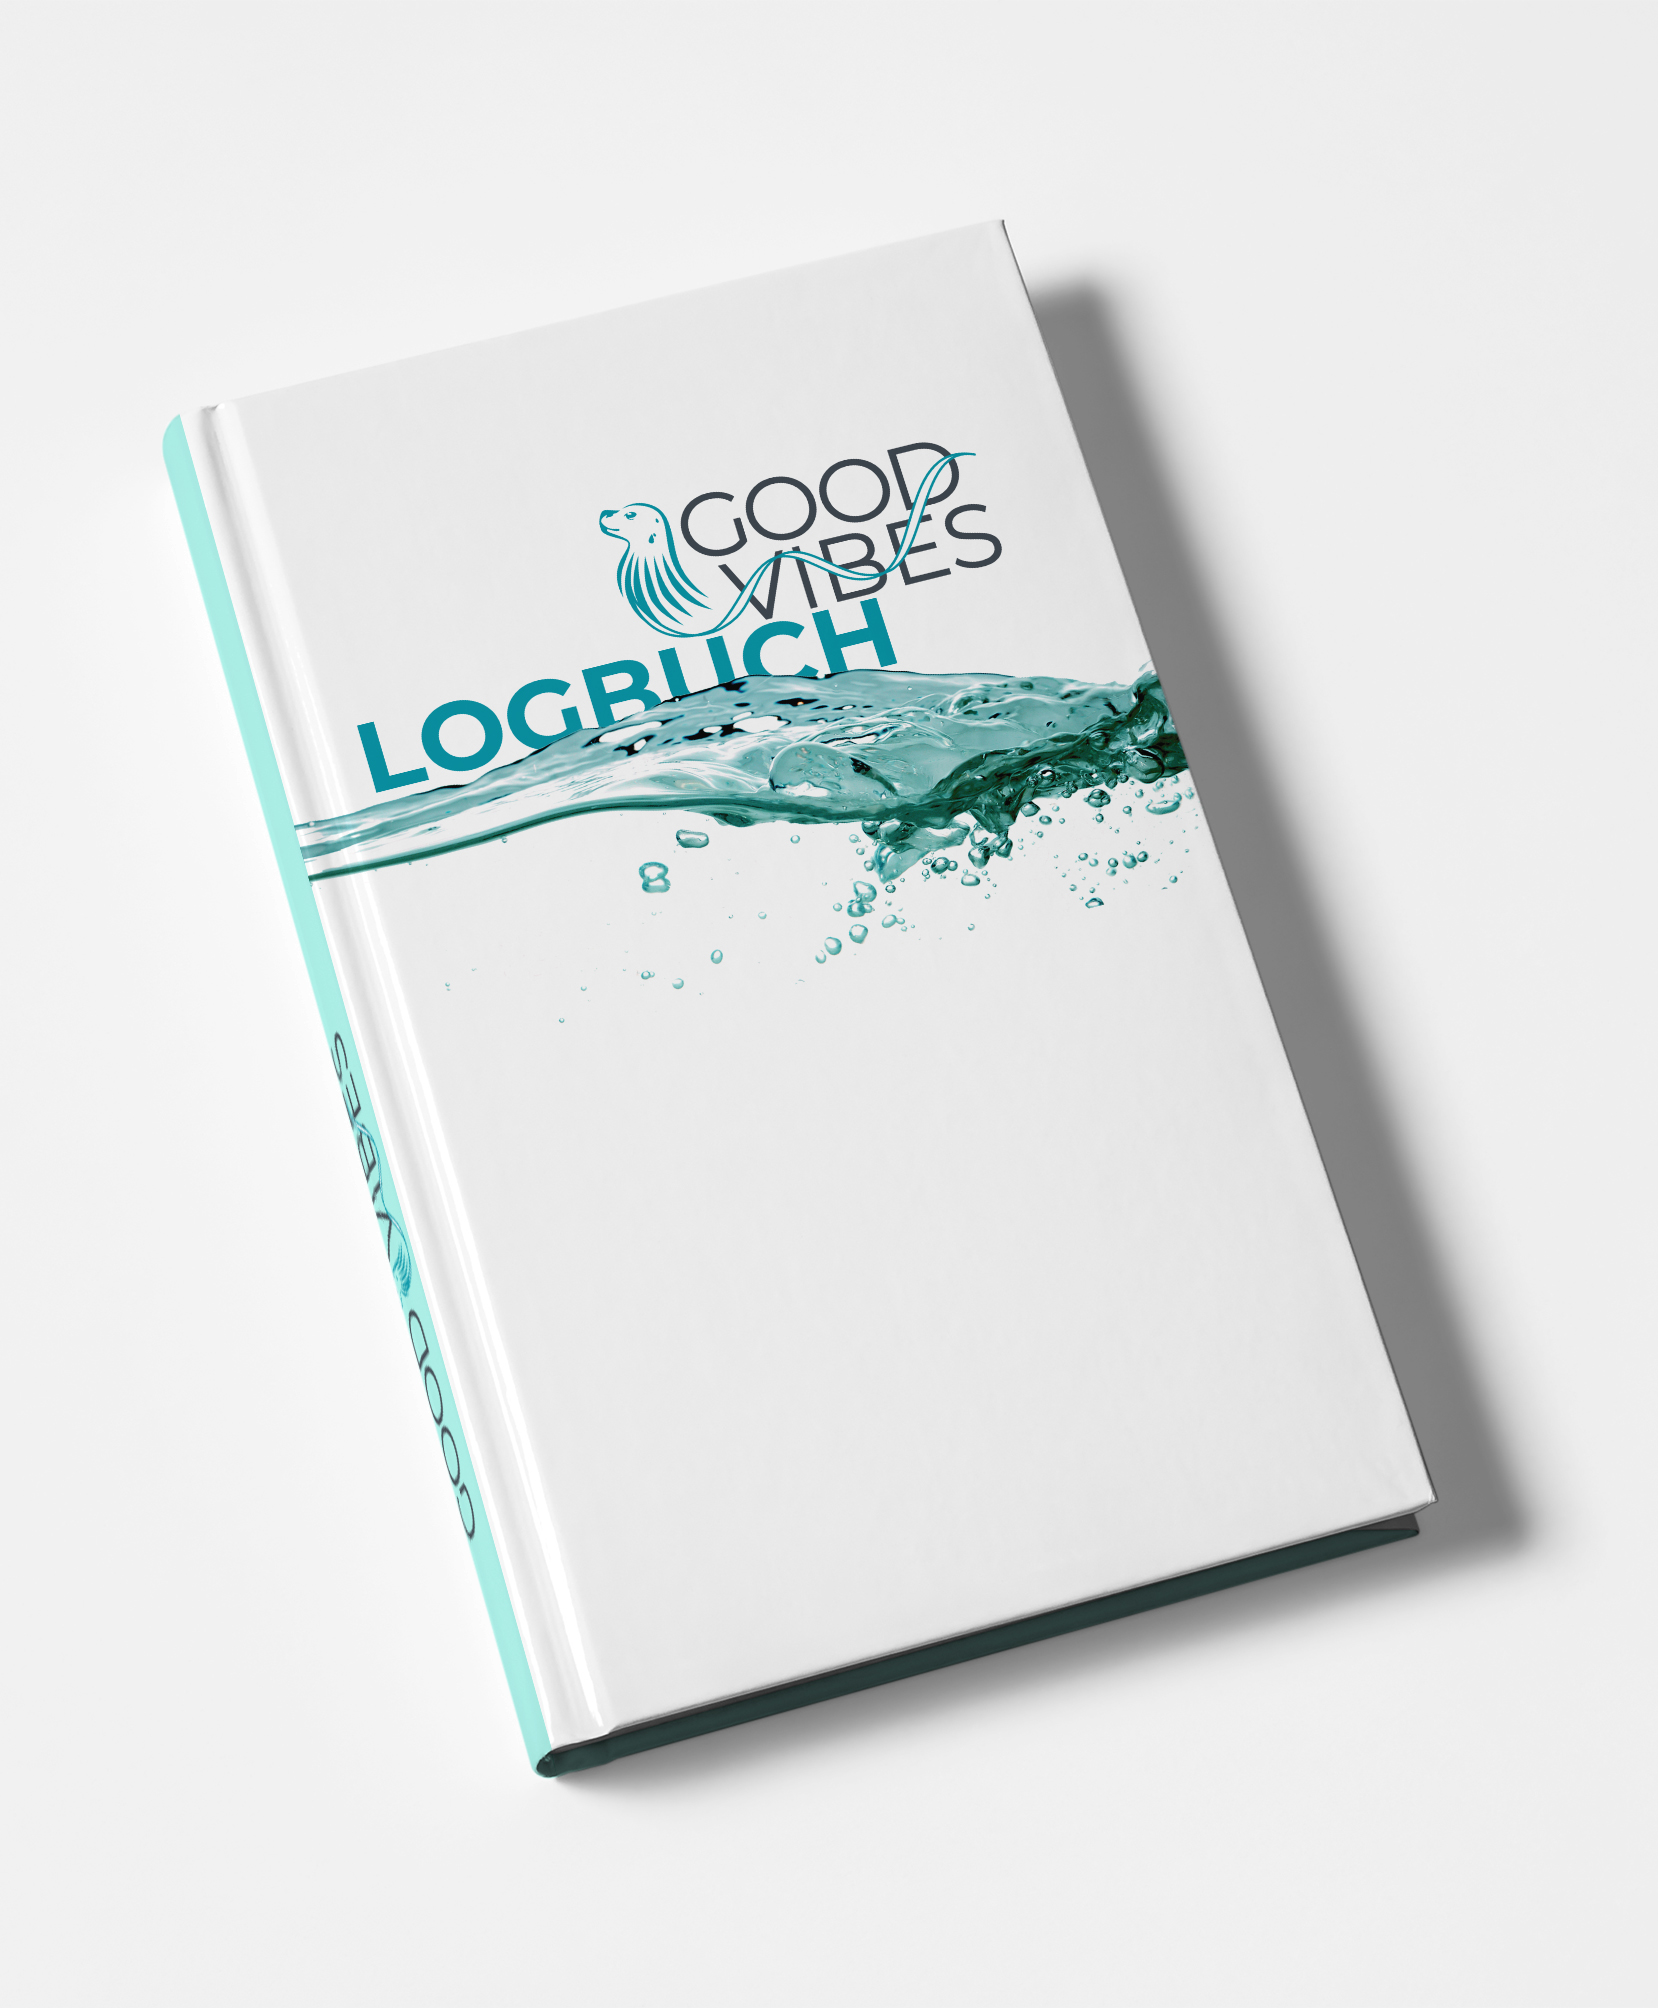 Good Vibes Logbook